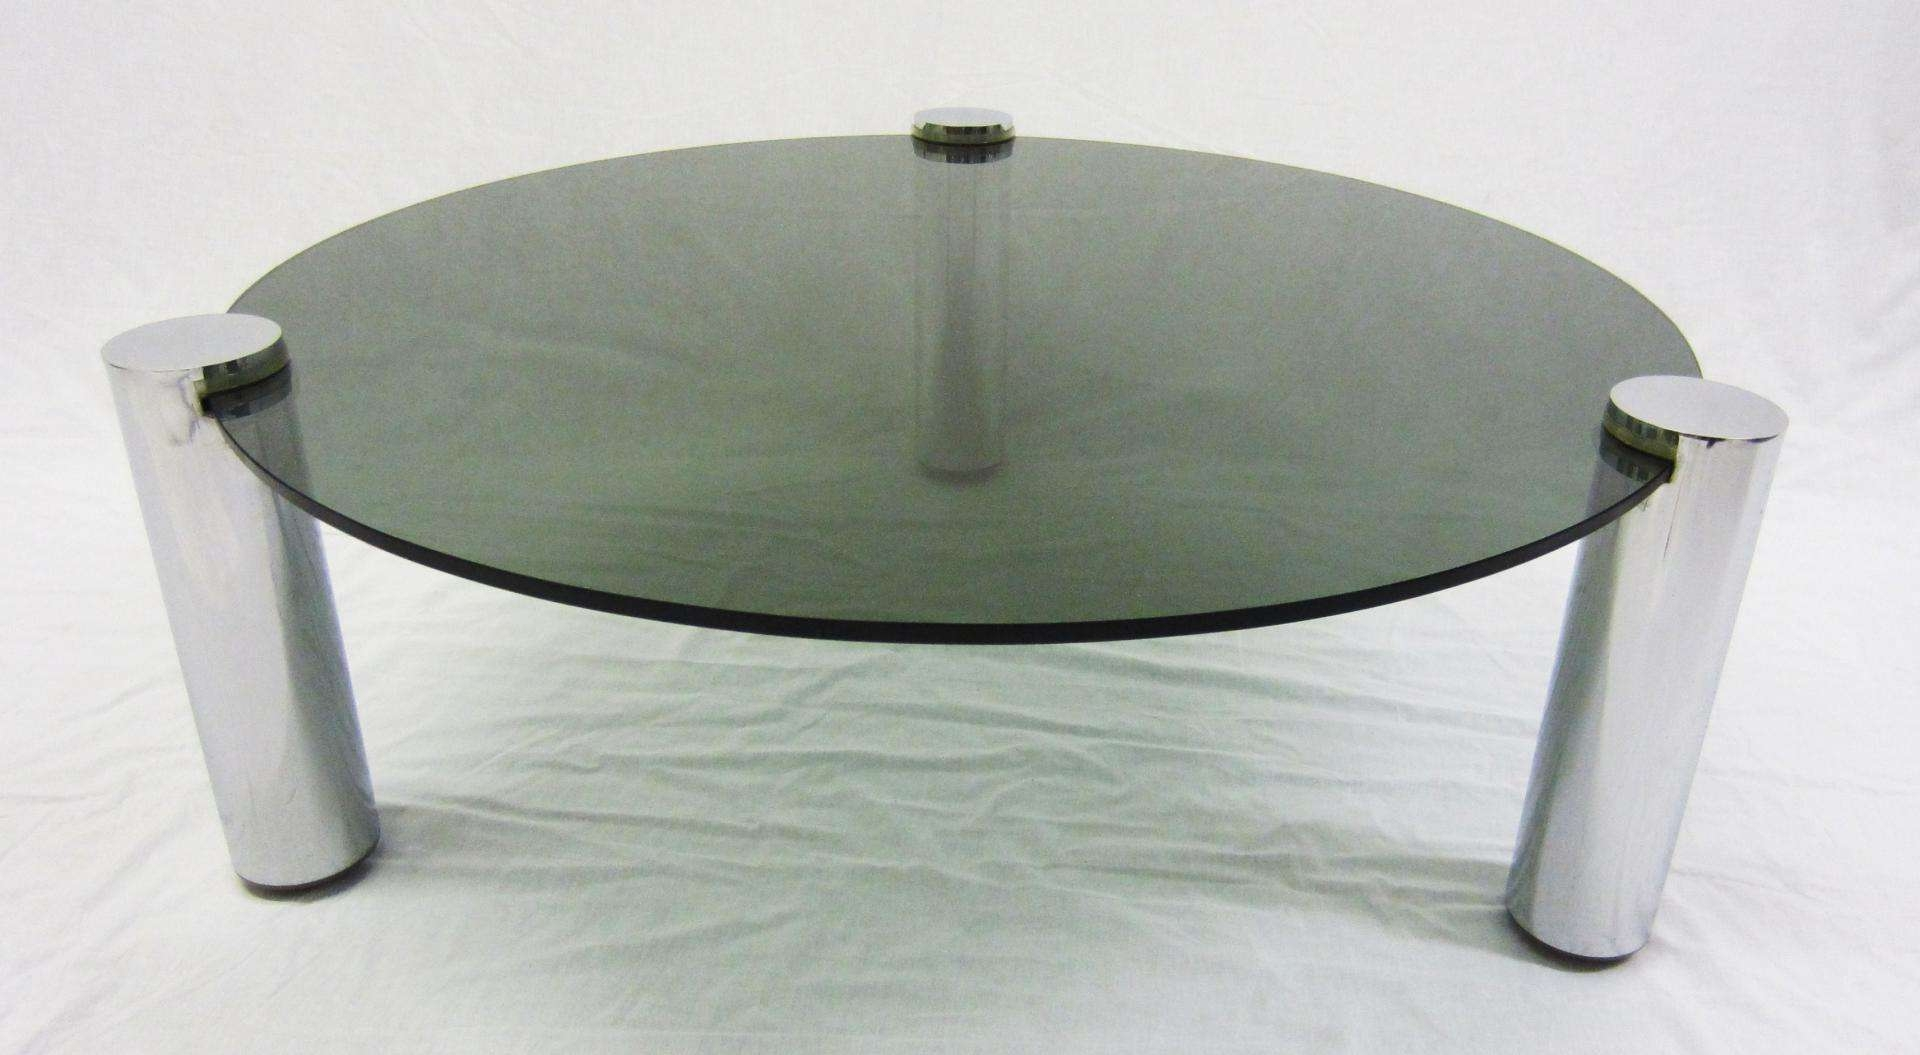 Newest Glass And Chrome Coffee Tables For Round Glass And Chrome Coffee Table From Pieff, 1960s For Sale At (View 12 of 20)